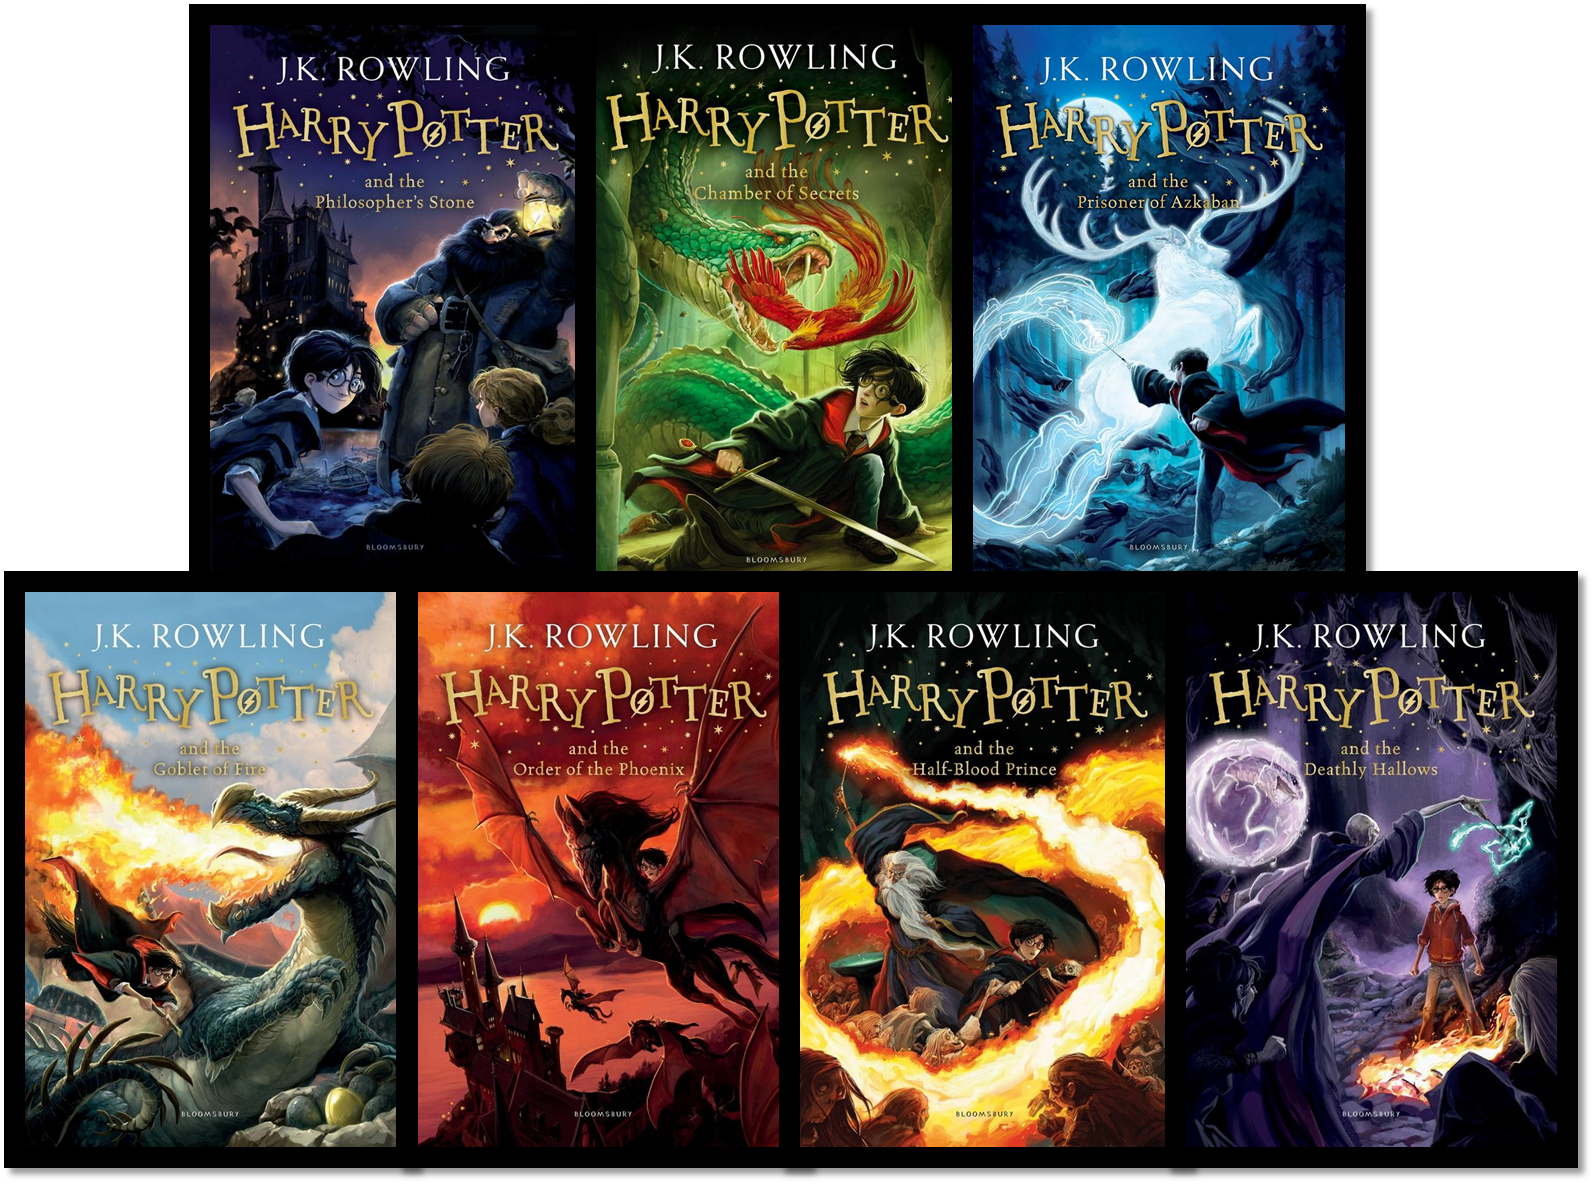 Bloomsbury New Harry Potter Covers And Artist Interview Harry Potter Book Covers Harry Potter Sequence Harry Potter Books Series